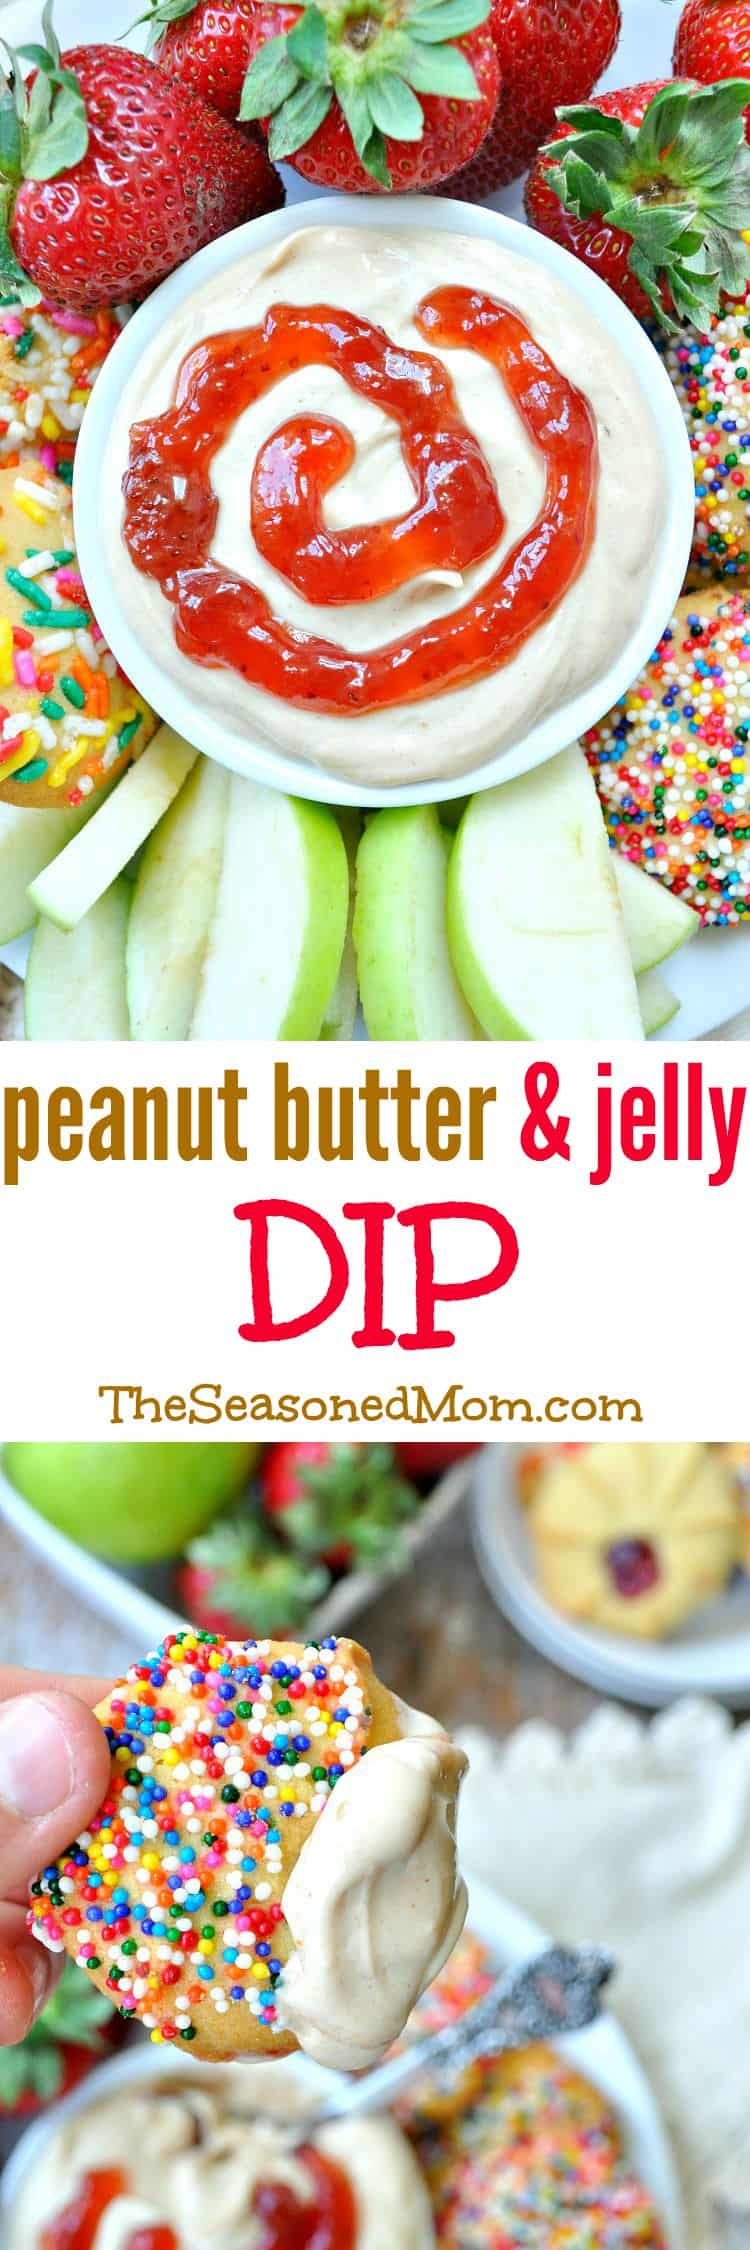 Whip up a quick 3-Ingredient Peanut Butter and Jelly Dip for a healthy snack that kids and adults LOVE!